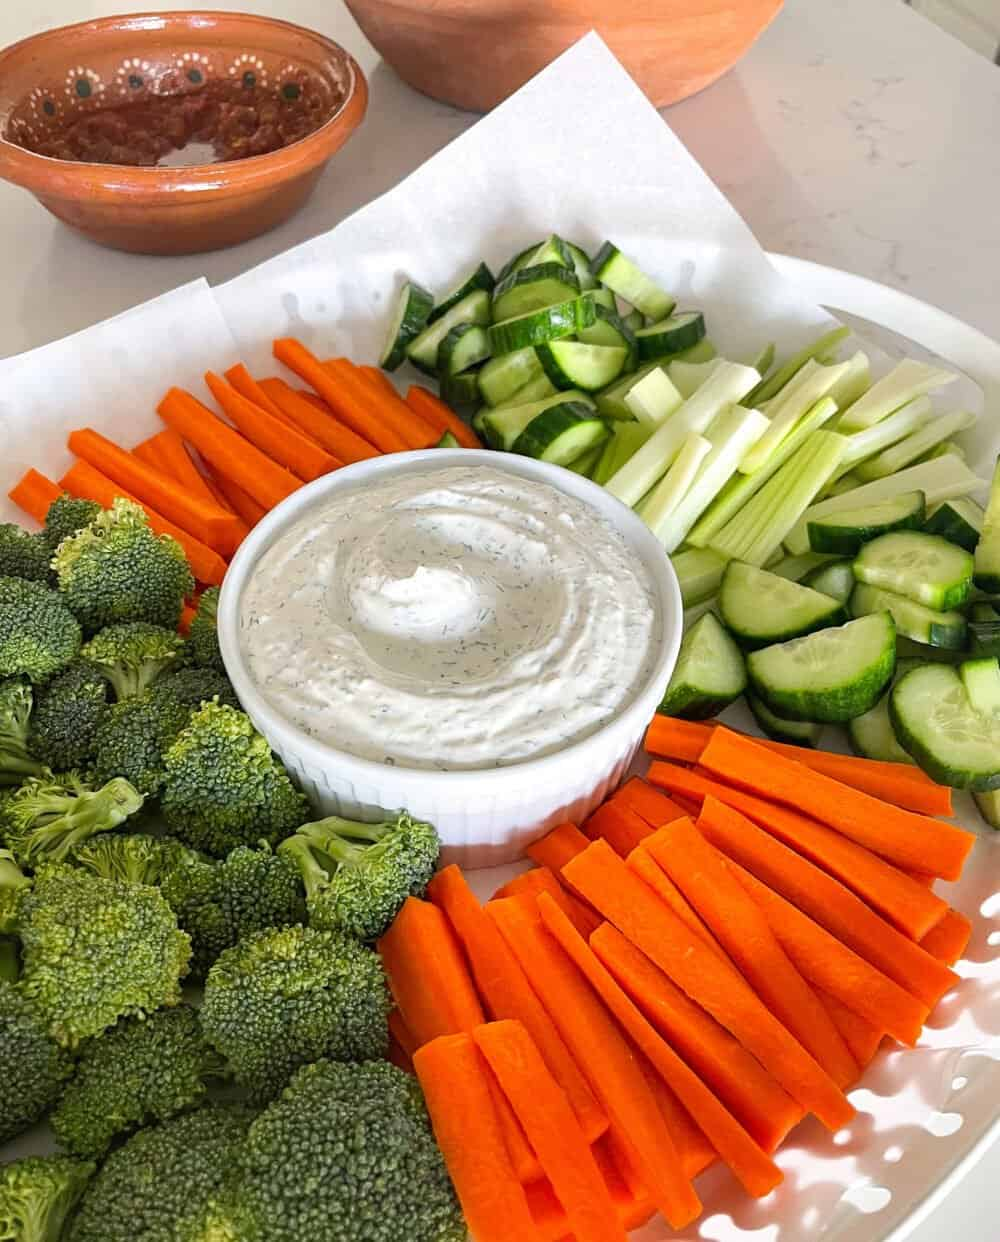 vegetables on serving tray with dip in middle